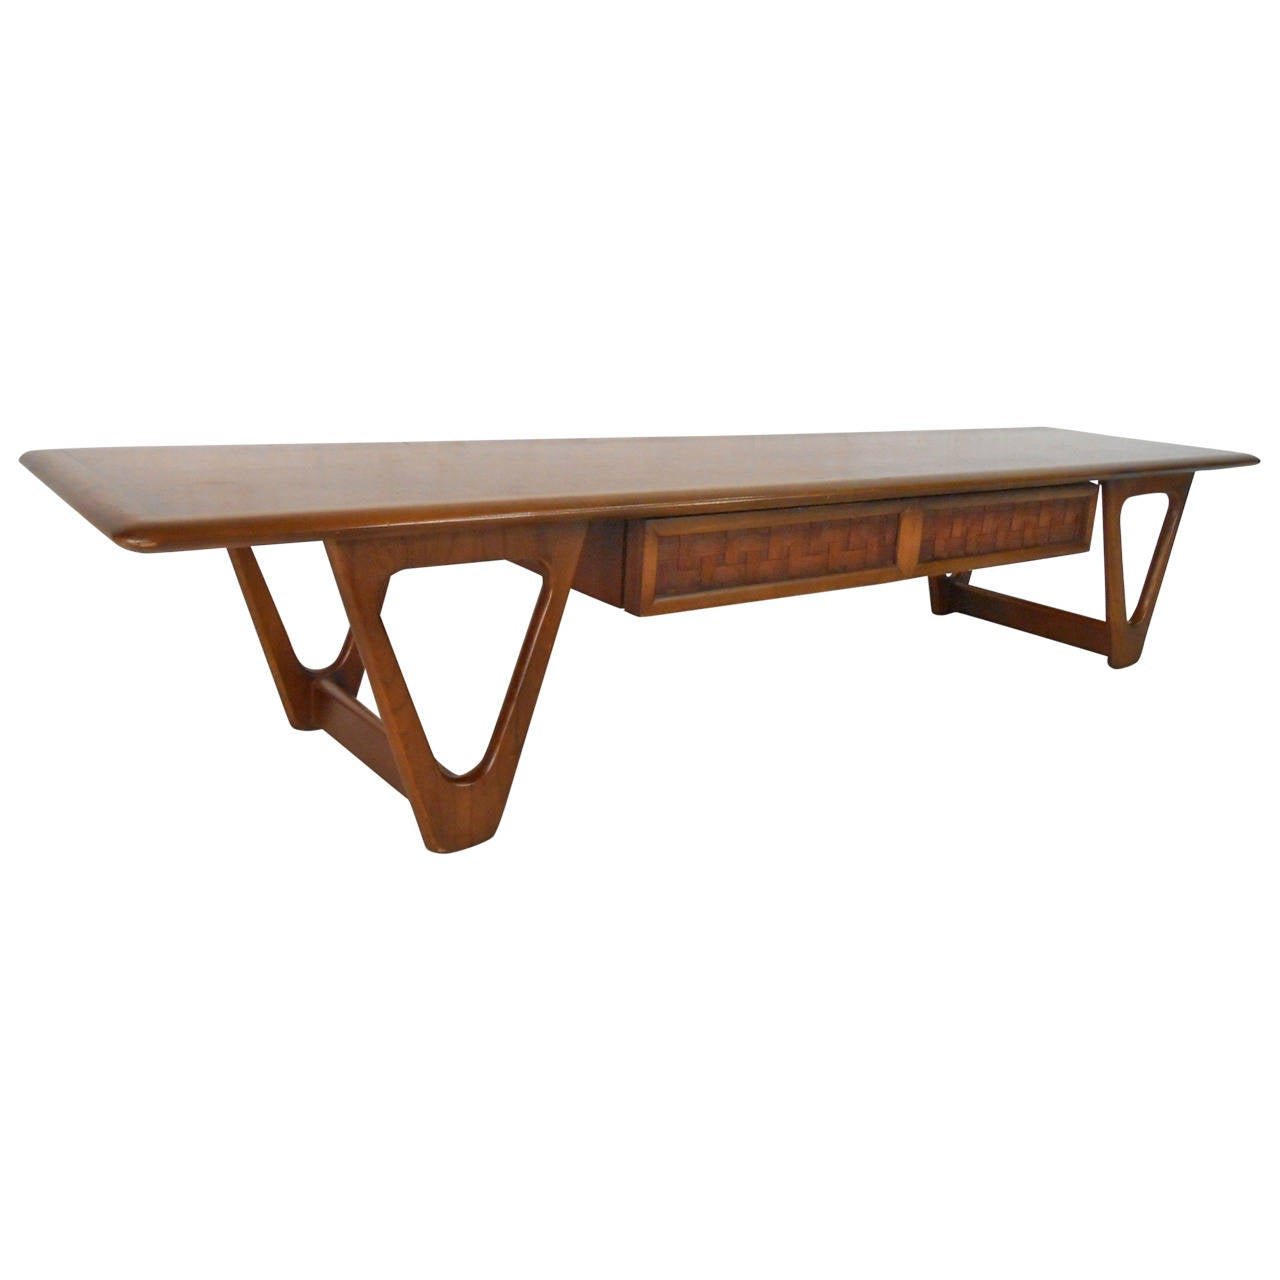 midcentury modern sculpted base warren church coffee table by lane furniture